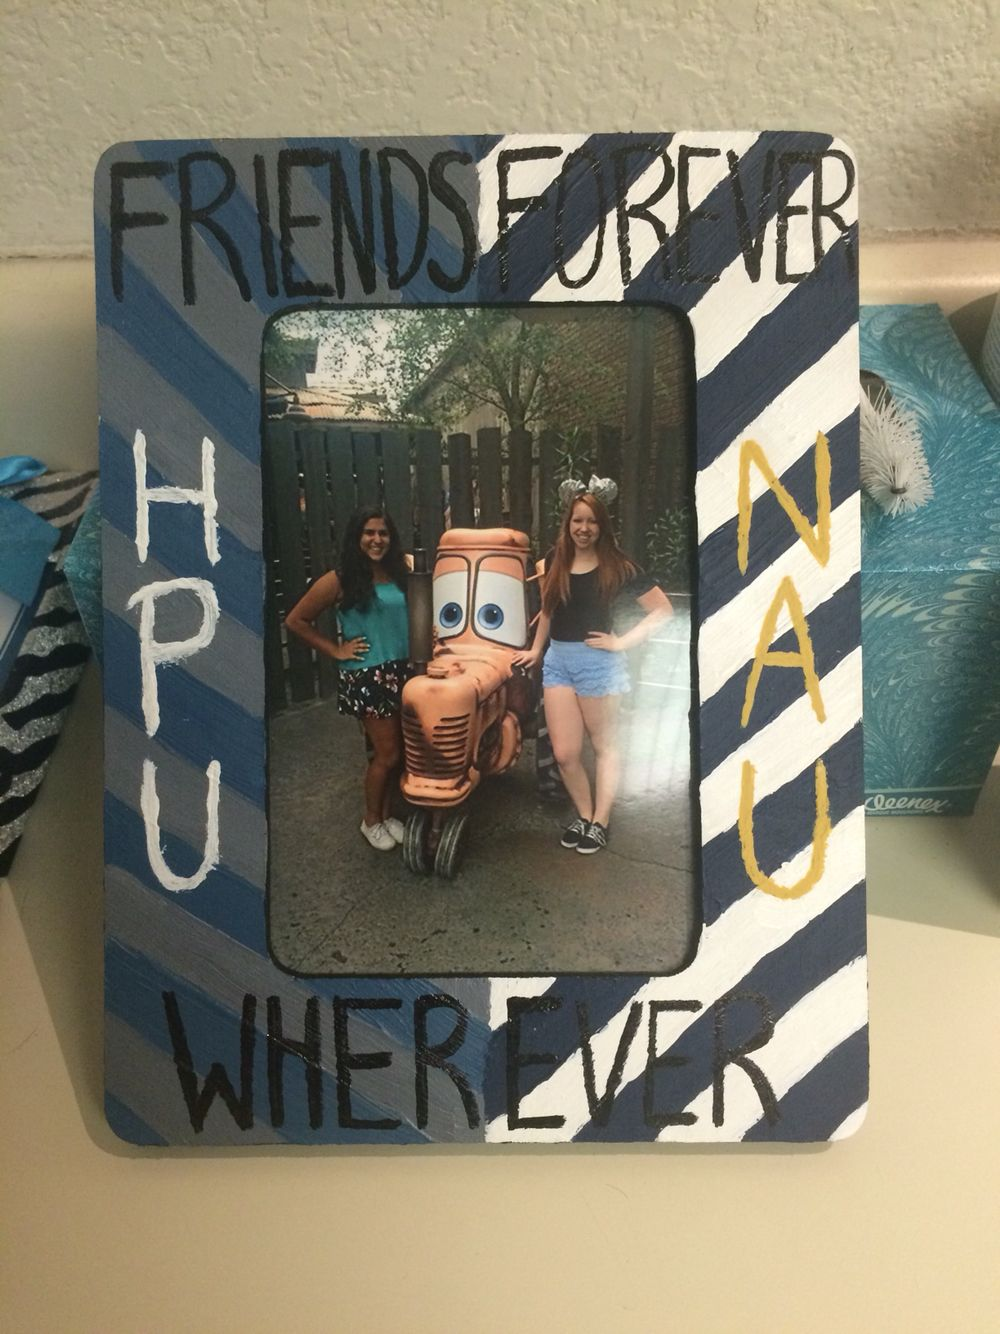 College going away present for friends going to different